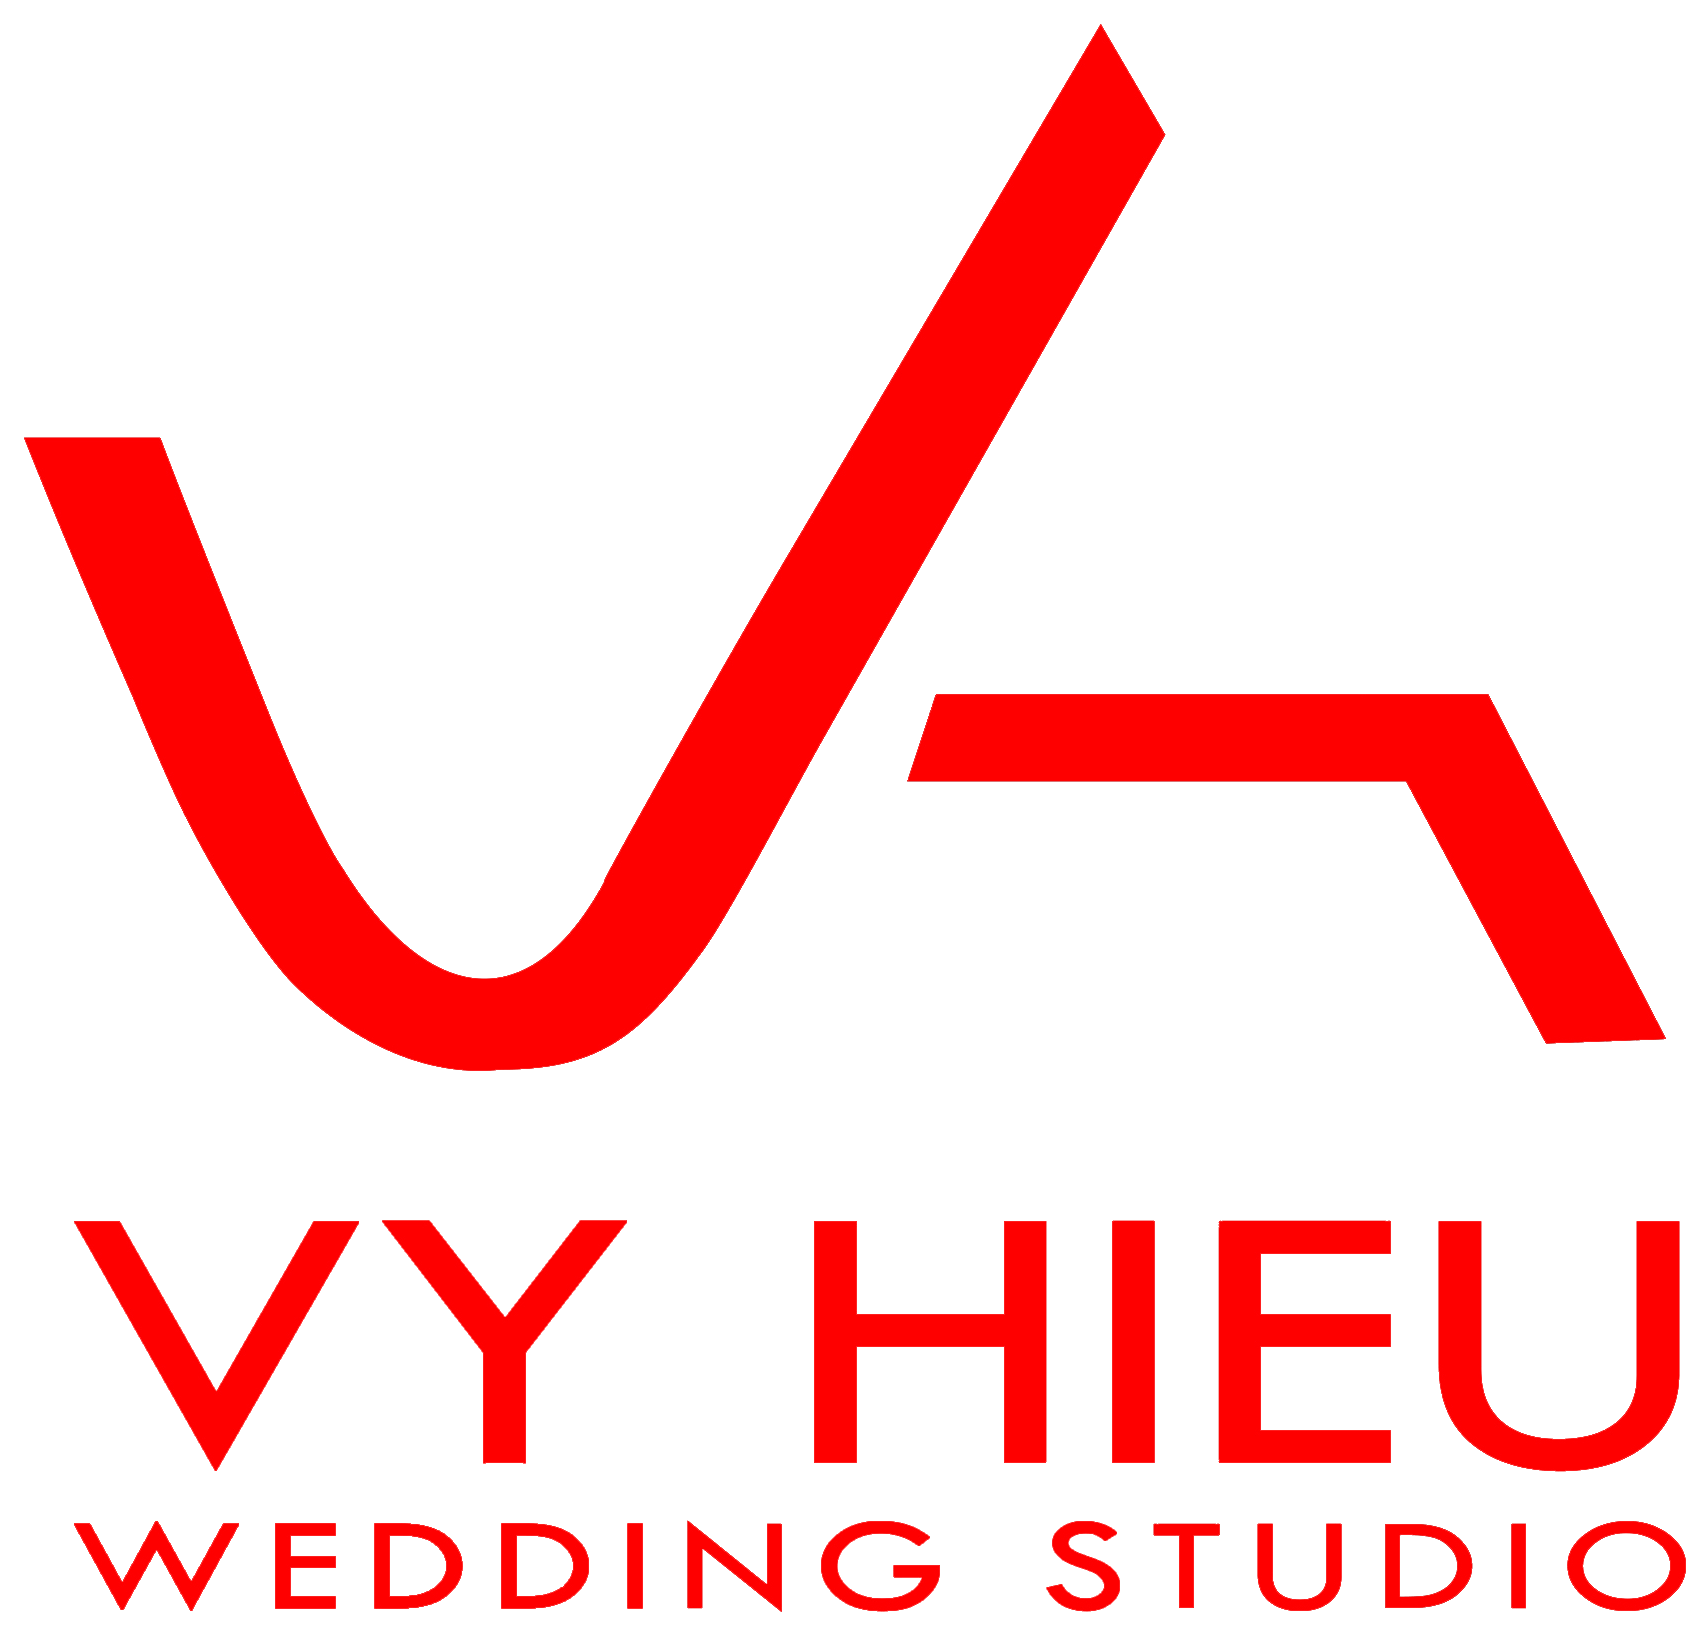 logo Vy Hieu Wedding Studio